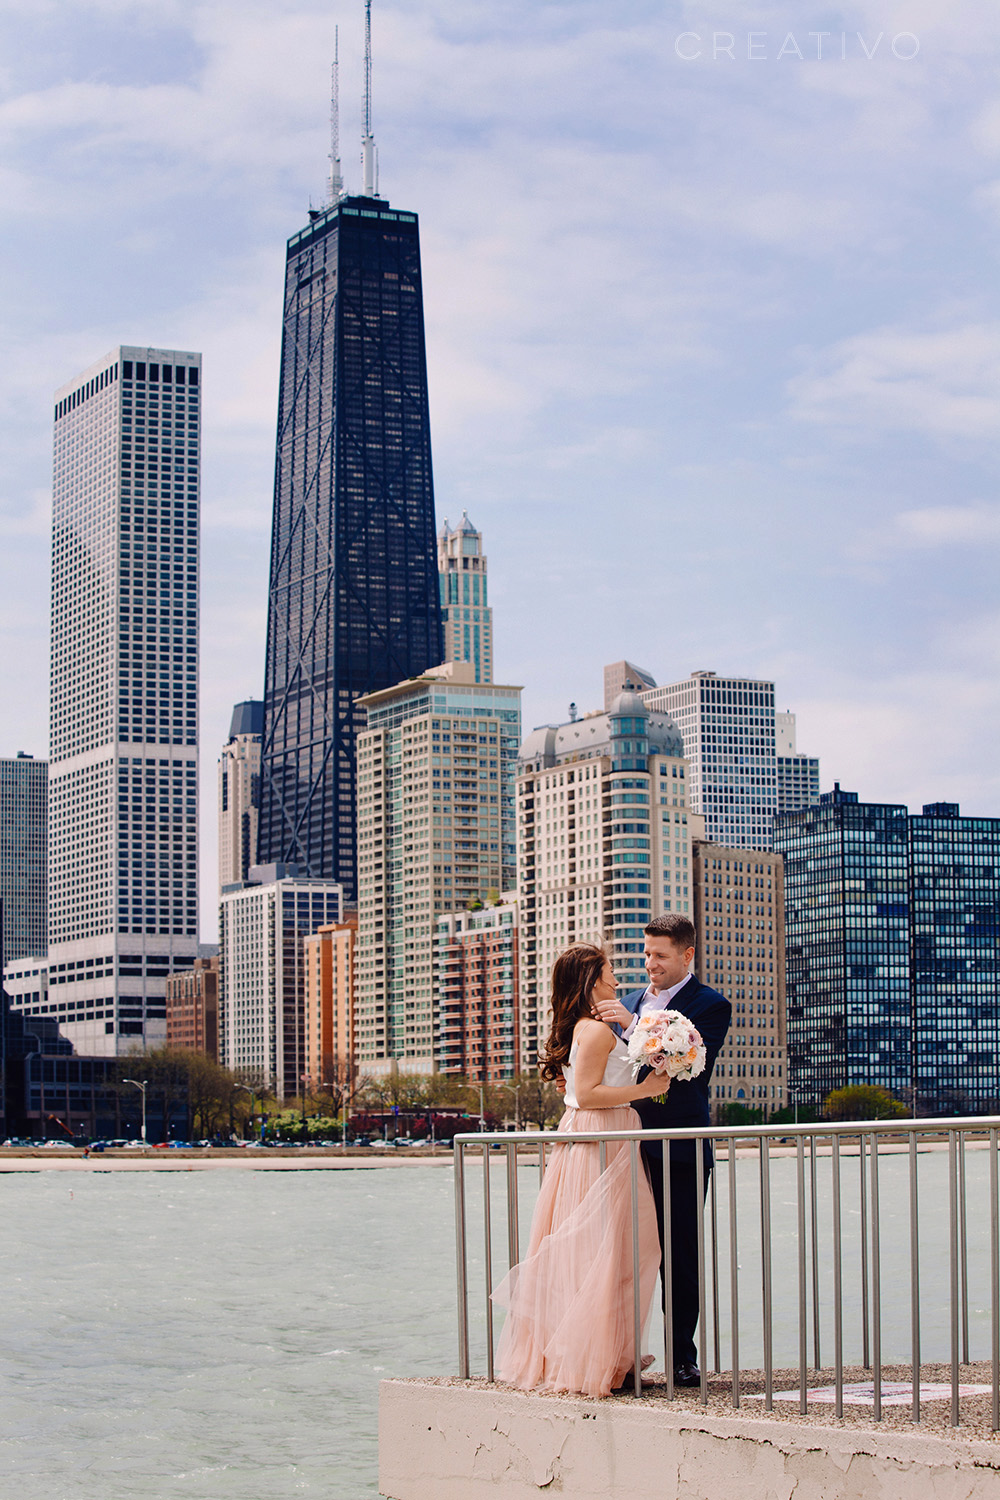 06-HollyBill-spring-elopement-Chicago.jpg